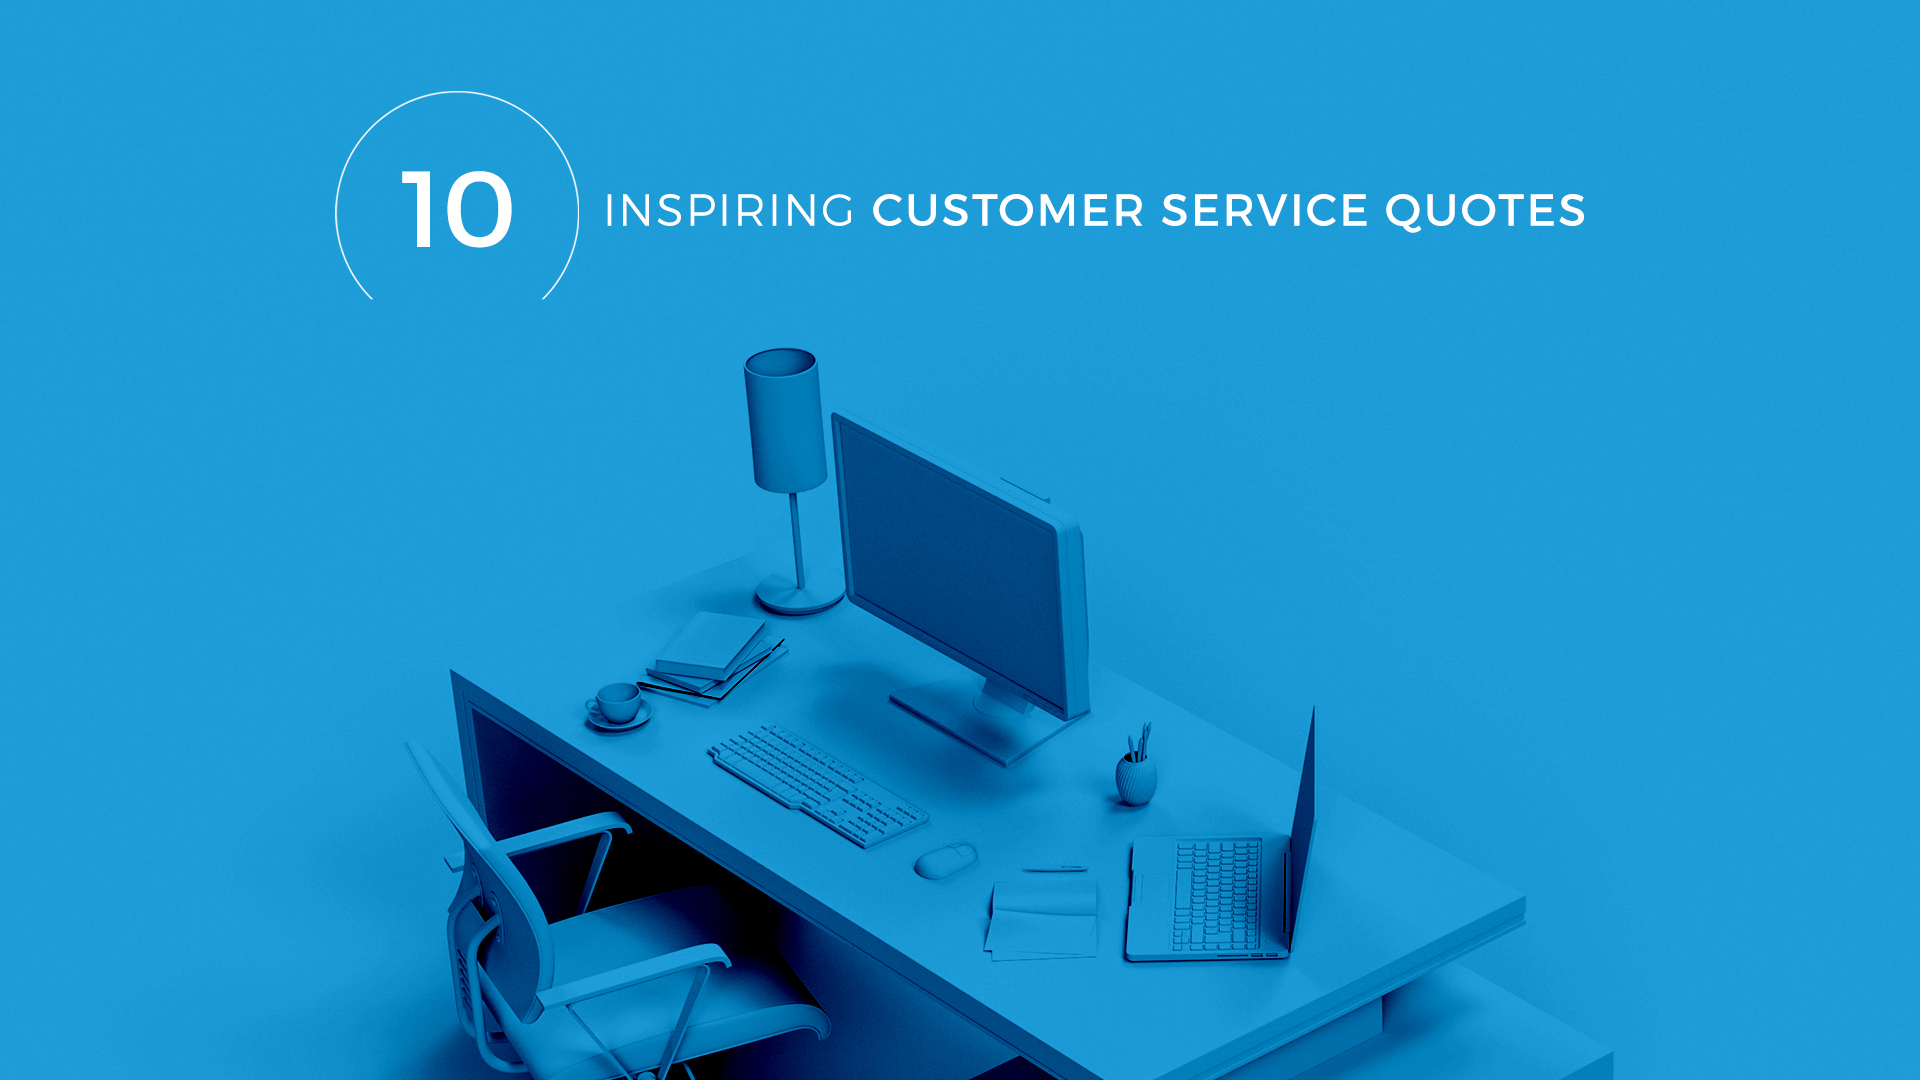 10 Inspiring Customer Service Quotes to Live By